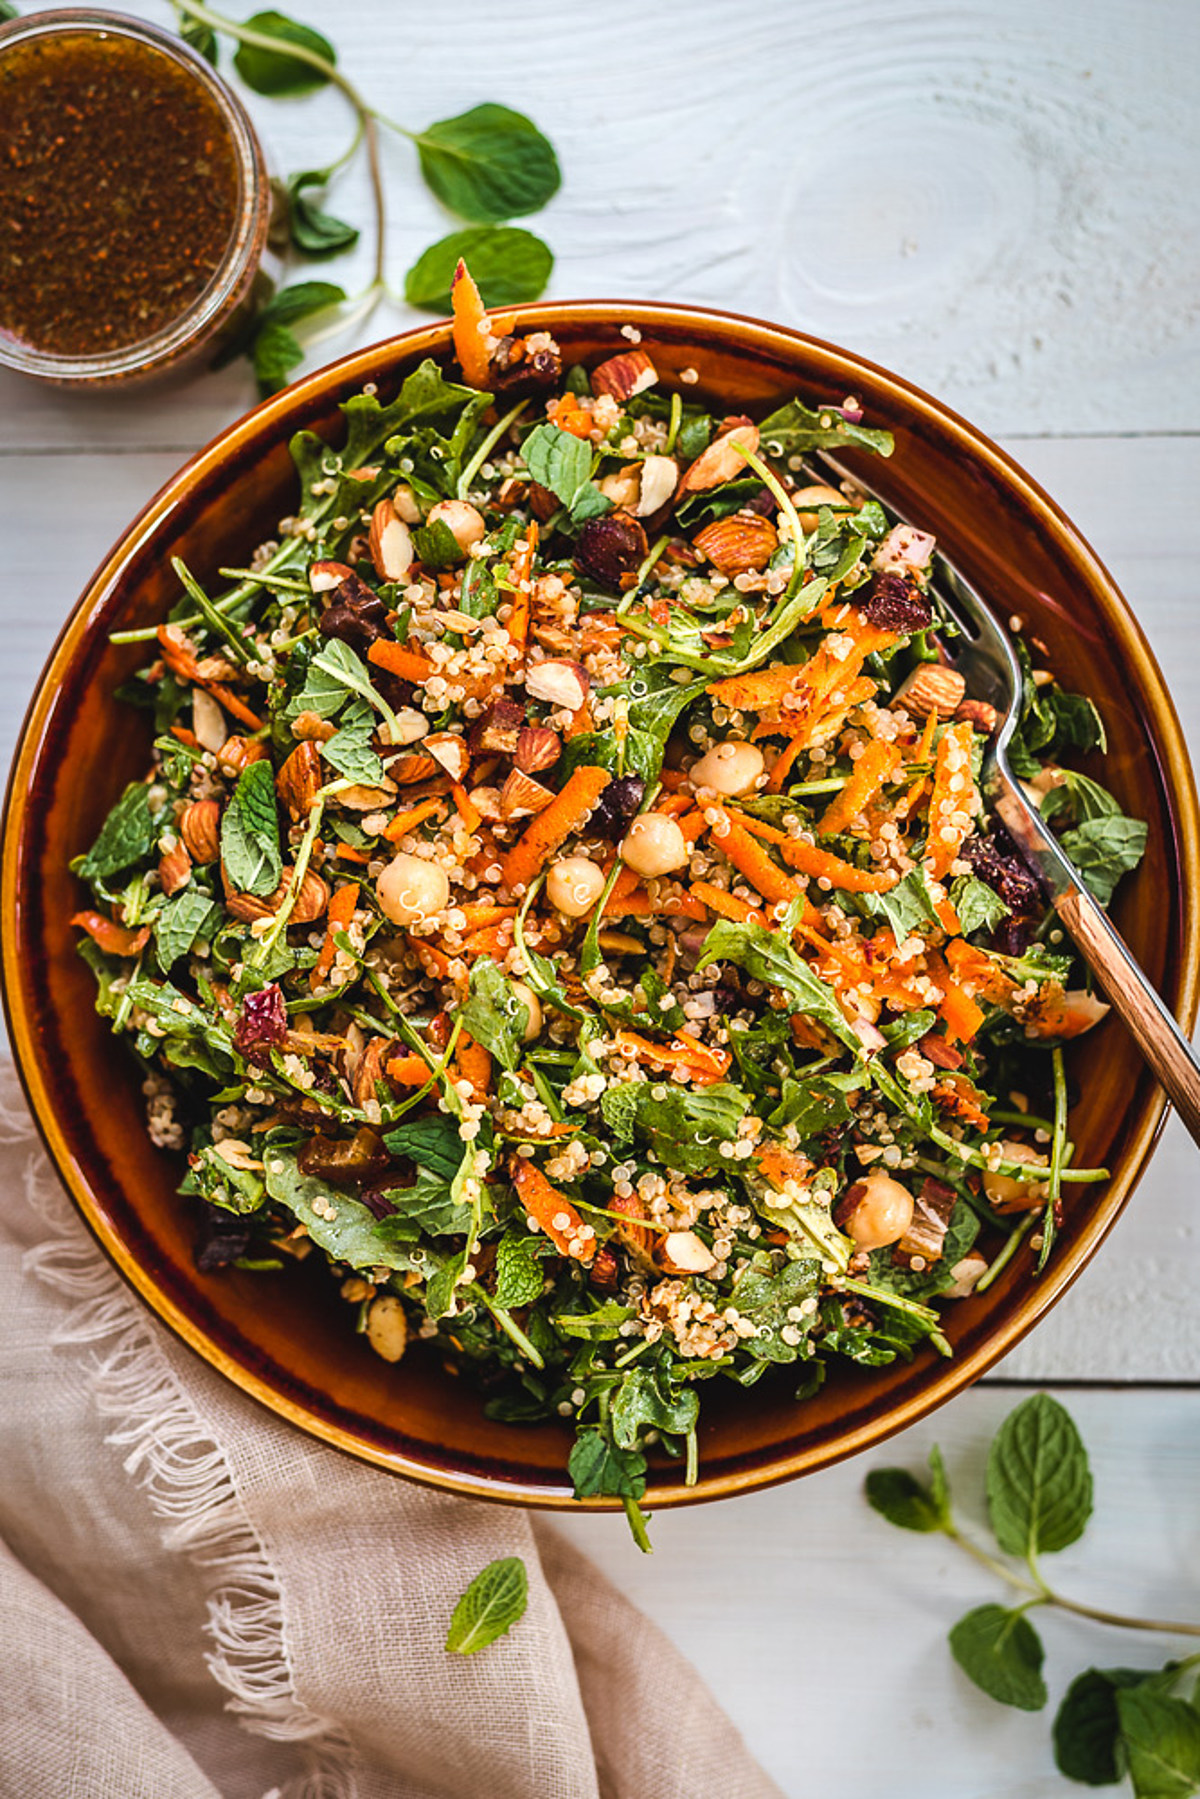 Moroccan-Inspired Salad with Superfoods and Plant-Based Protein